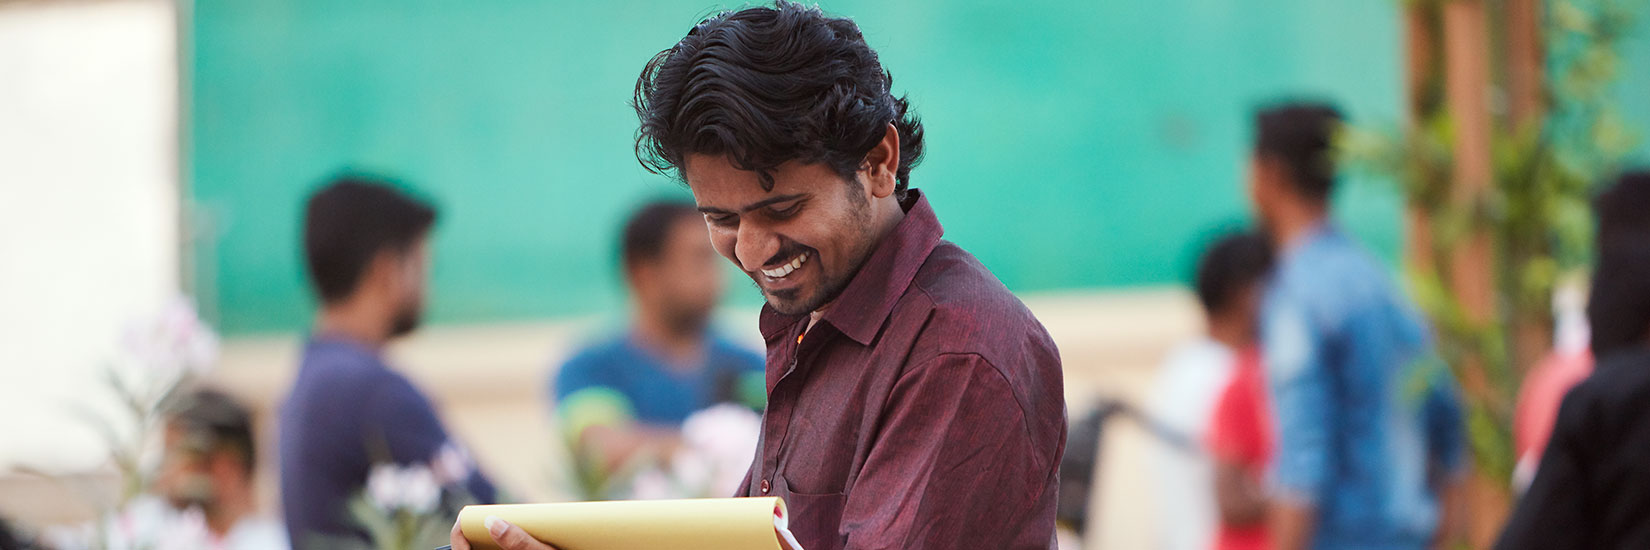 Man looking at pad of paper and smiling